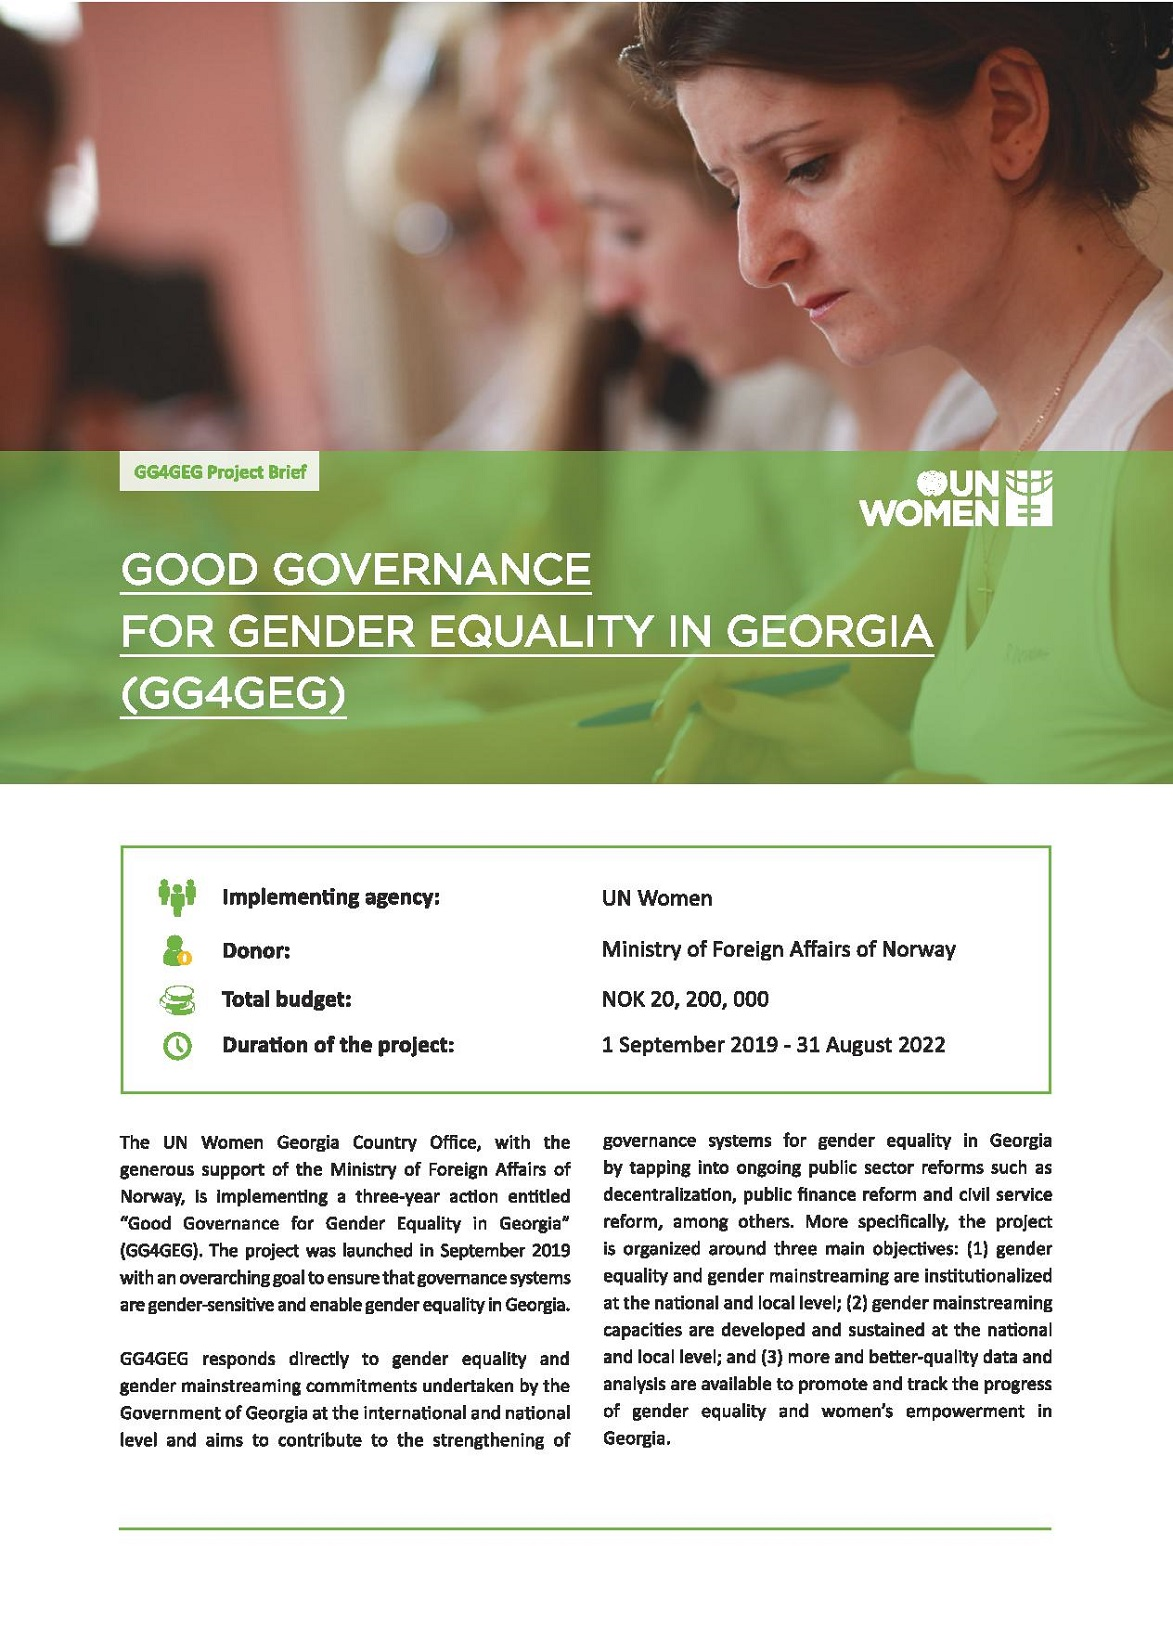 Good Governance for Gender Equality in Georgia